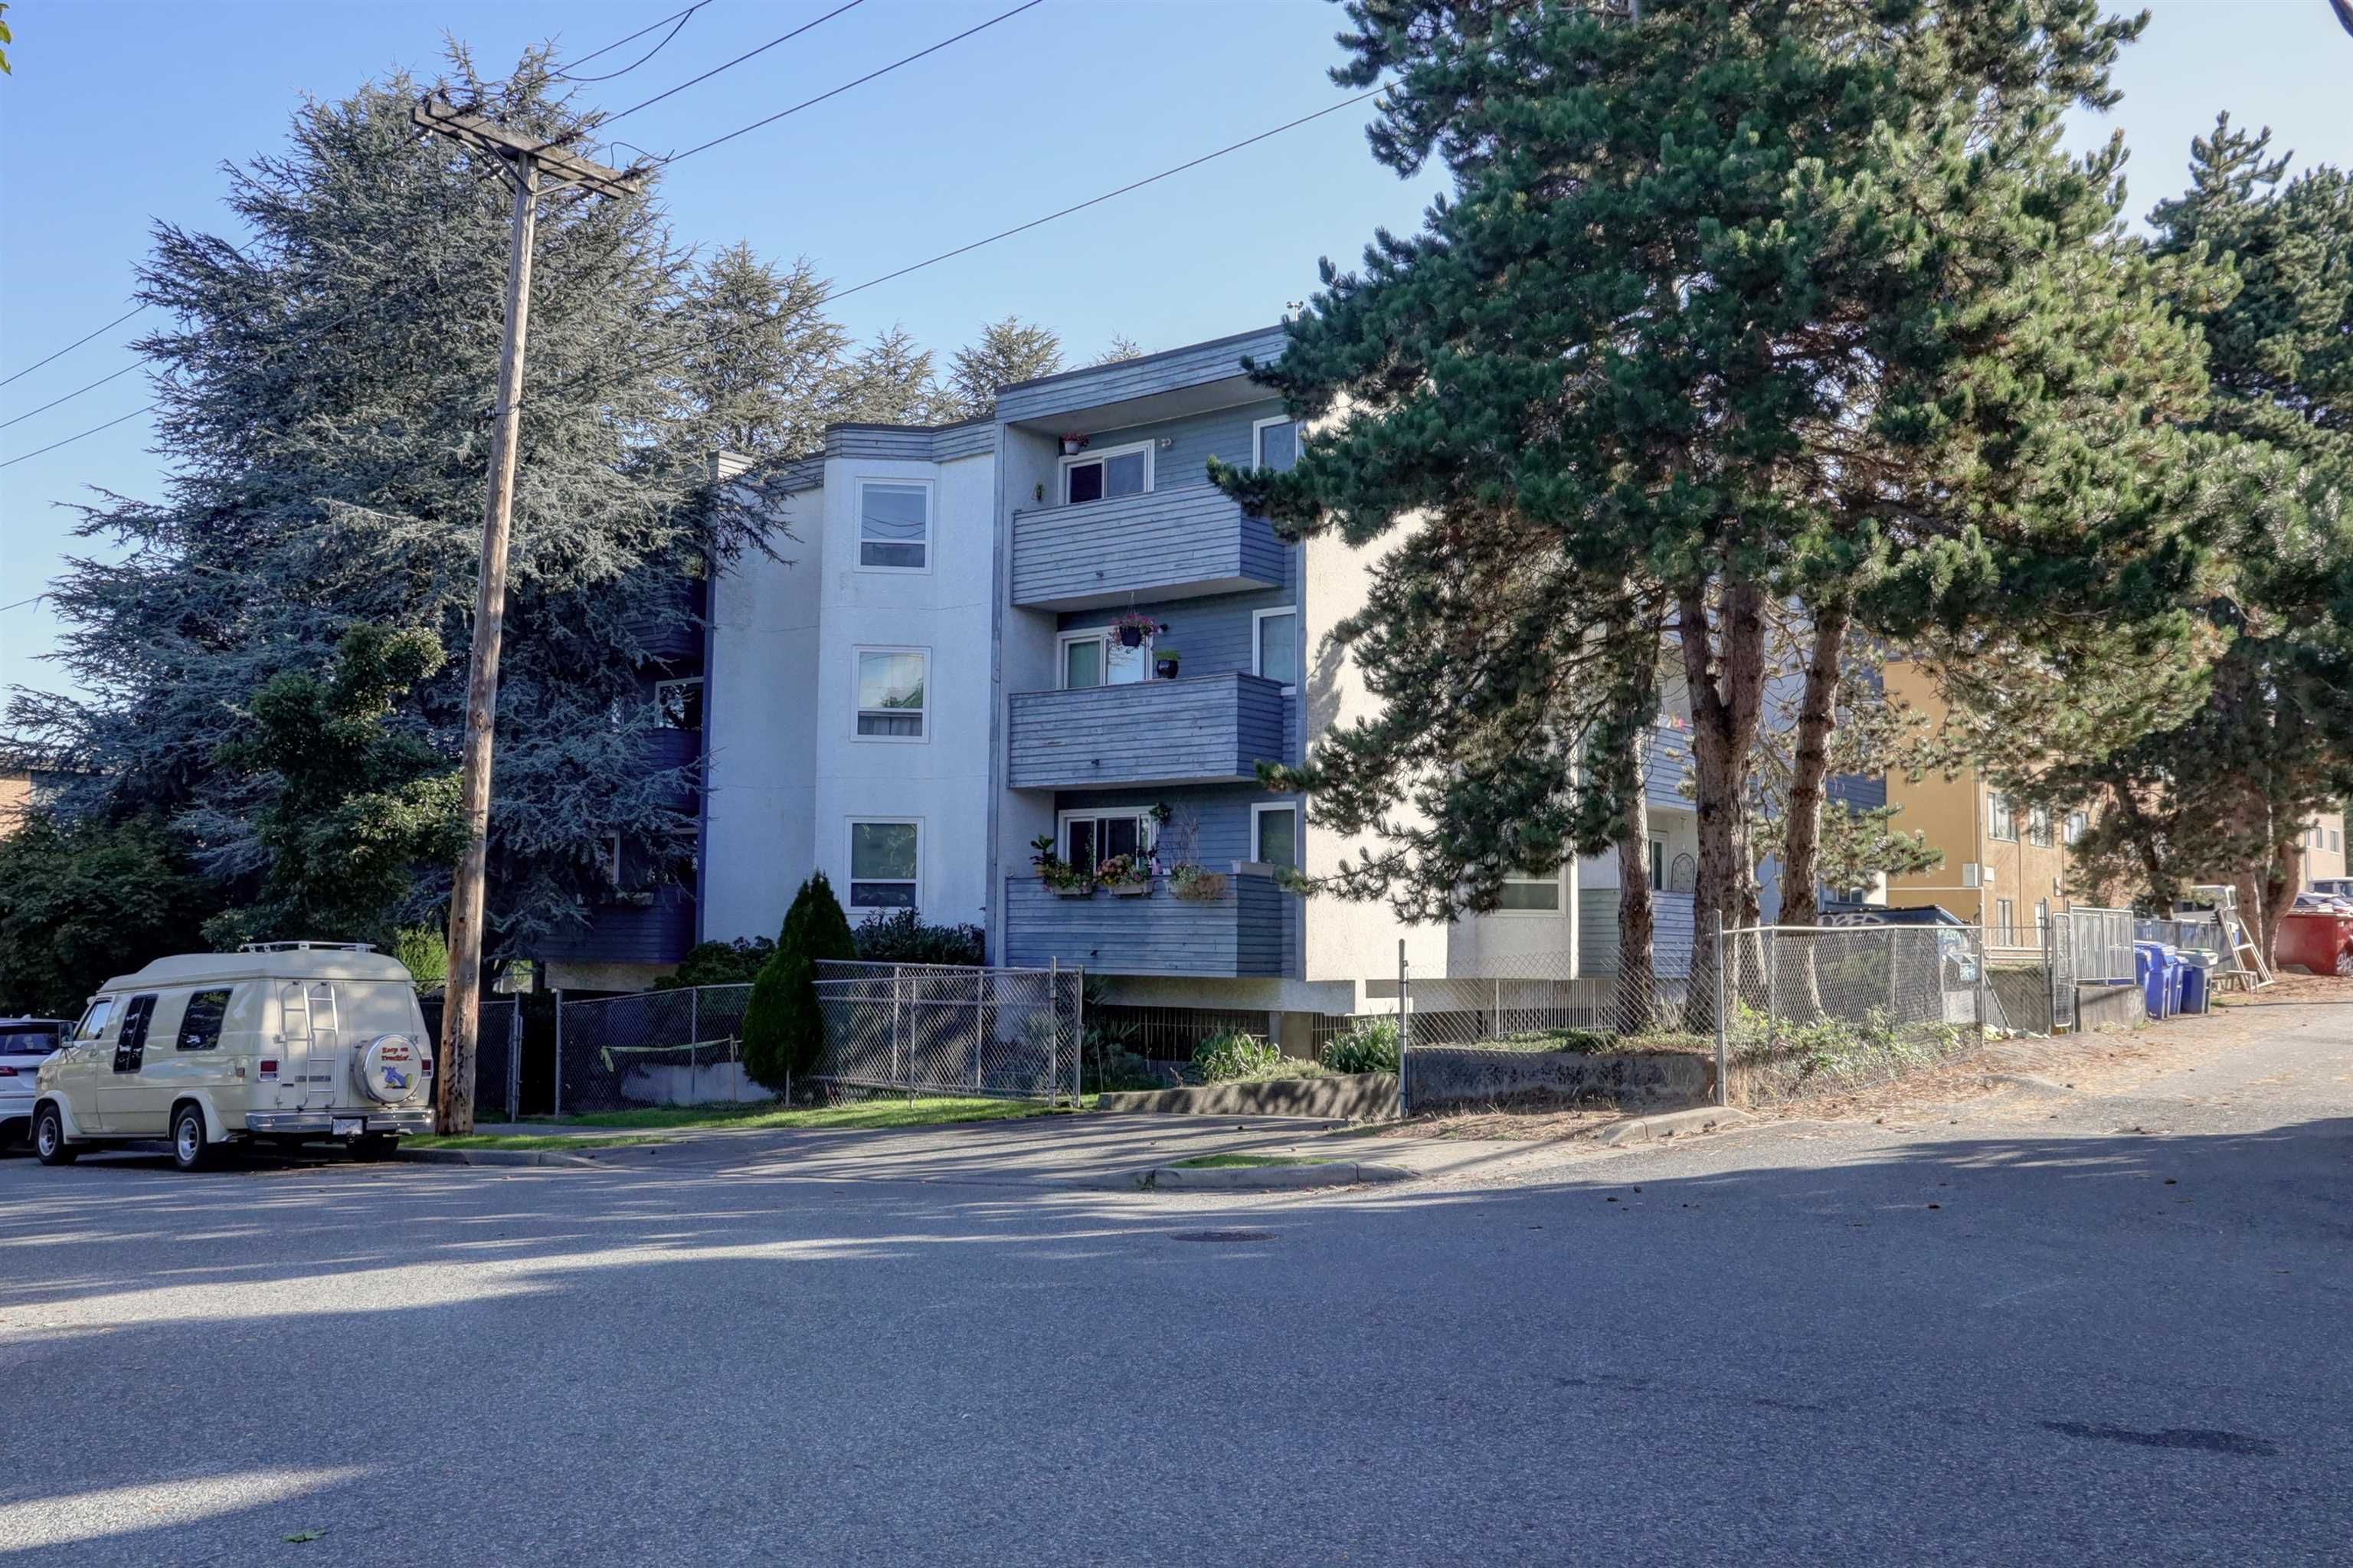 """Main Photo: 302 16 LAKEWOOD Drive in Vancouver: Hastings Condo for sale in """"Hastings"""" (Vancouver East)  : MLS®# R2617646"""